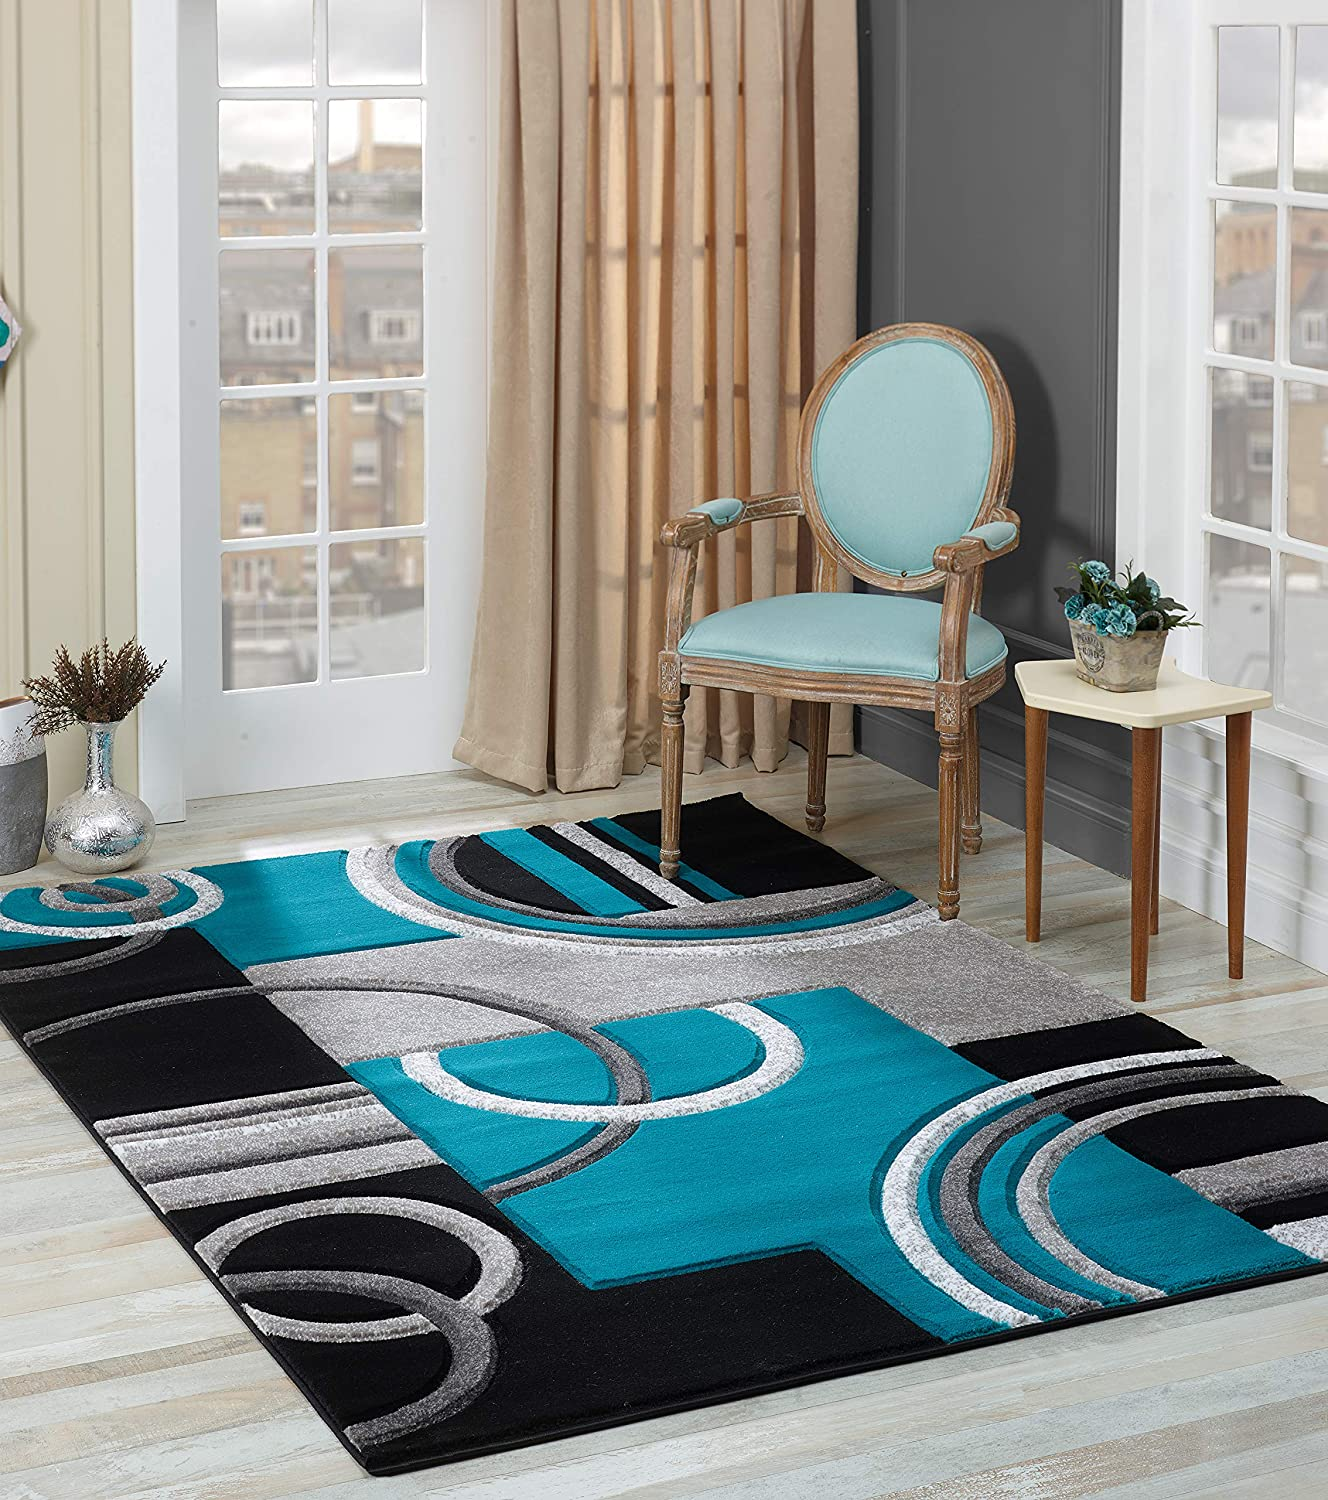 Amazon Com Glory Rugs Area Rug Modern 5x7 Turquoise Soft Hand Carved Contemporary Floor Carpet With Premium Fluffy Texture For Indoor Living Dining Room And Bedroom Area Home Kitchen